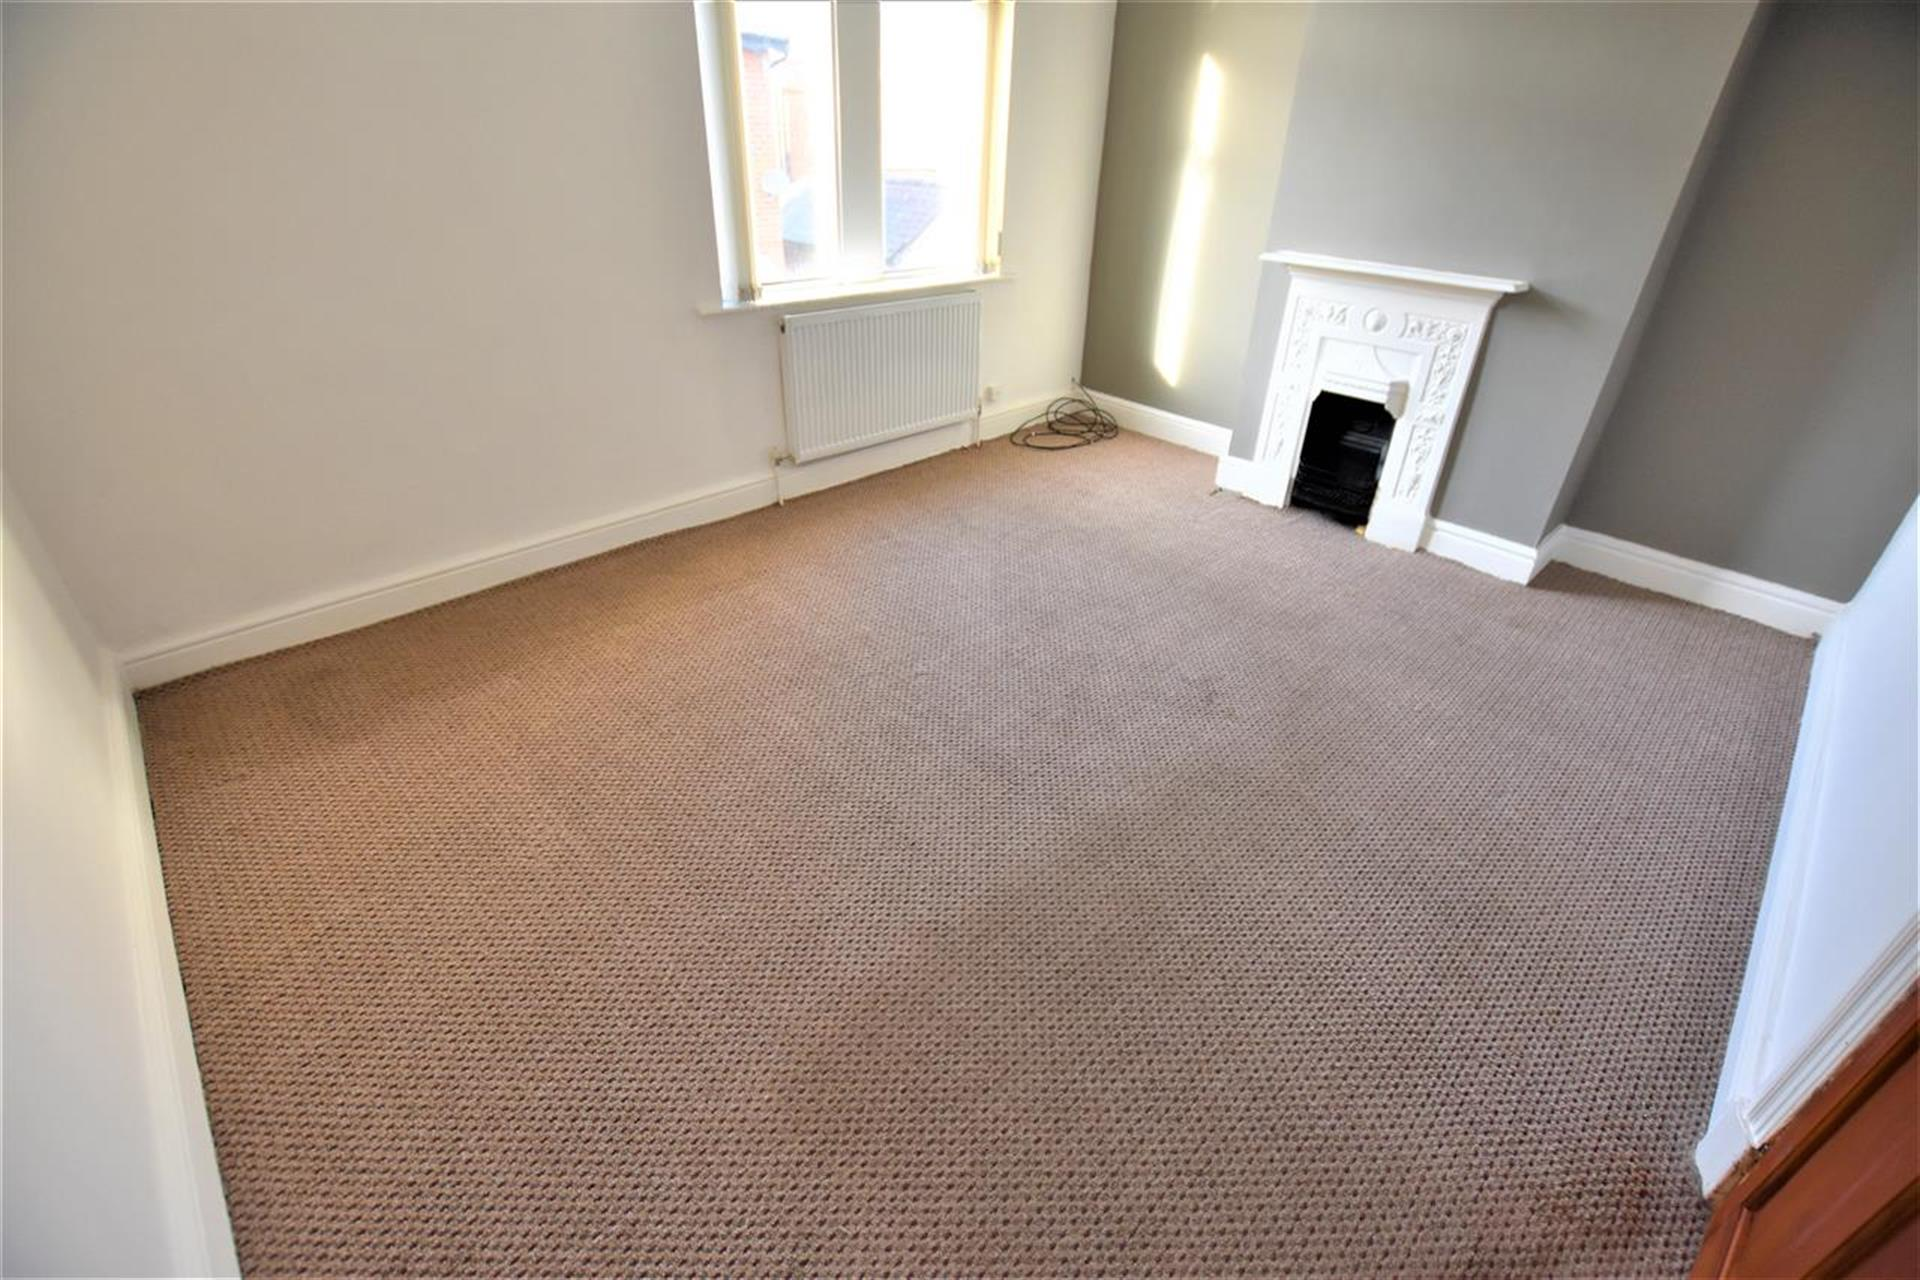 2 Bedroom End Terraced House For Sale - Master Bedroom